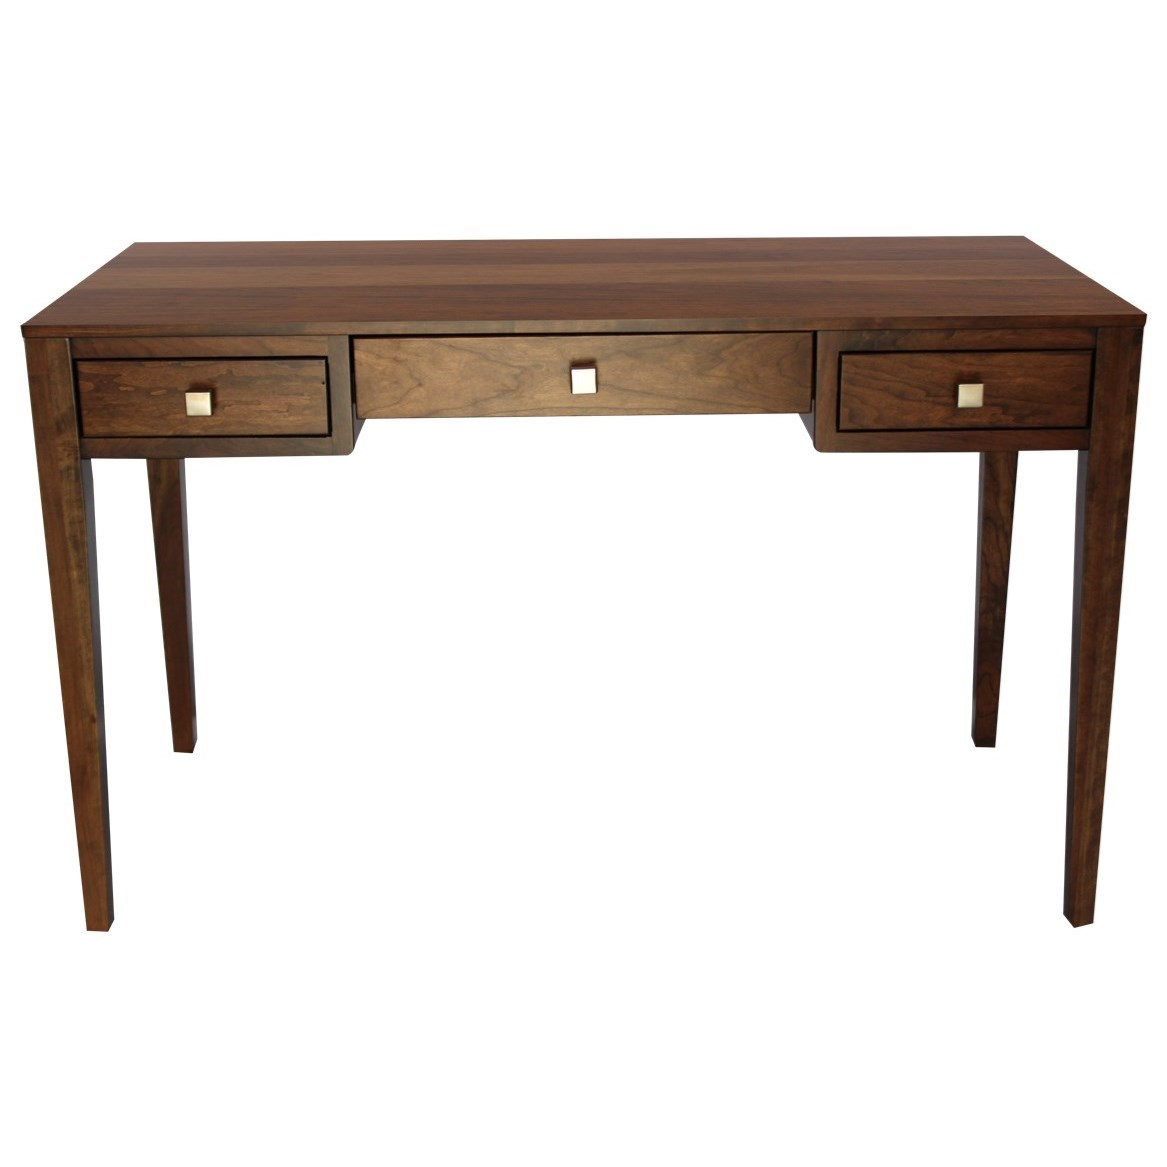 Century Style Customizable Solid Wood Library Table by Ashery Woodworking at Saugerties Furniture Mart